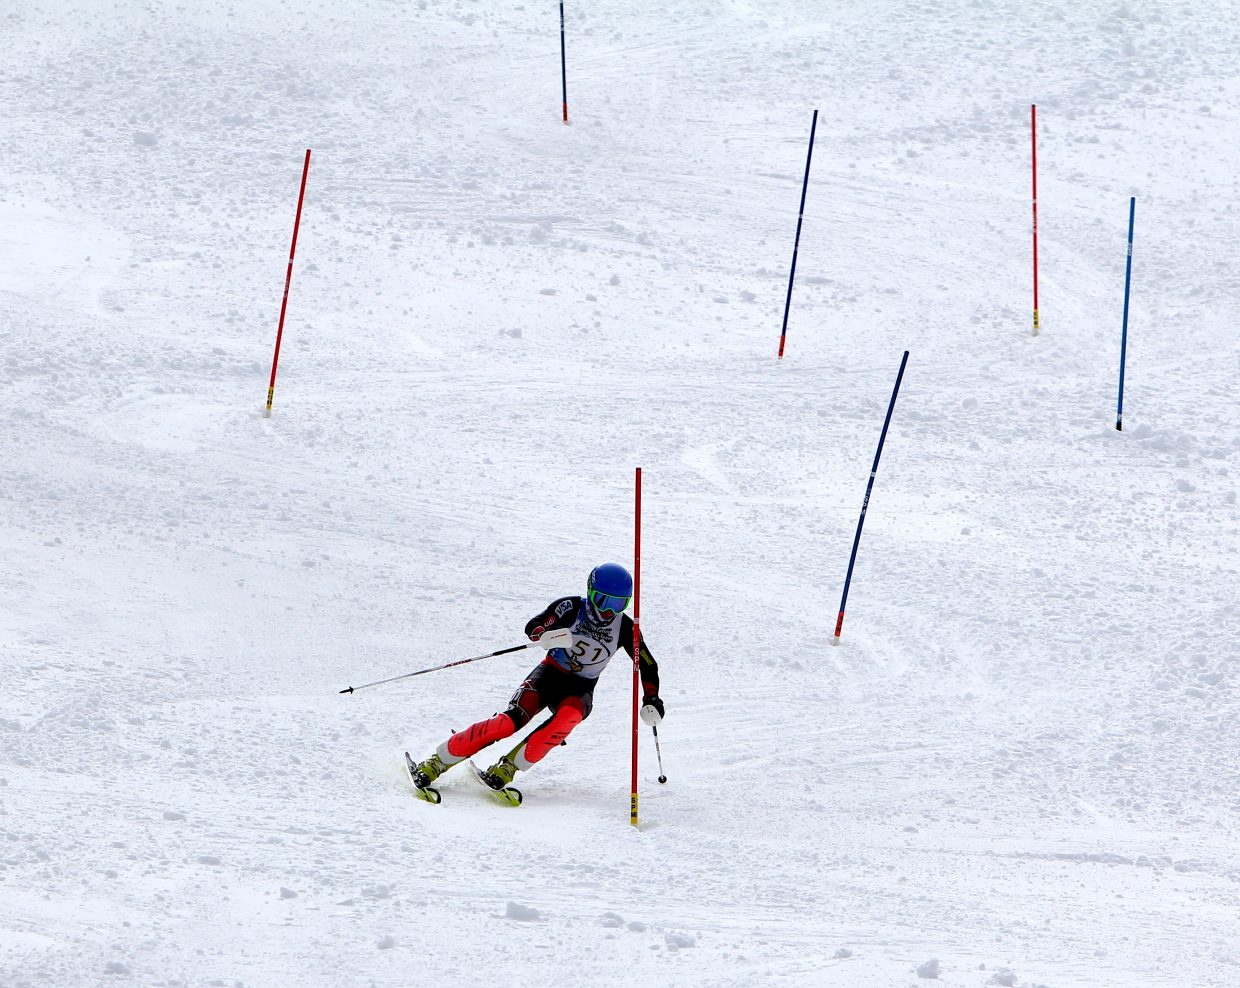 South Tahoe's Luke Allen speeds down the slalom course Monday at Sierra-at-Tahoe.